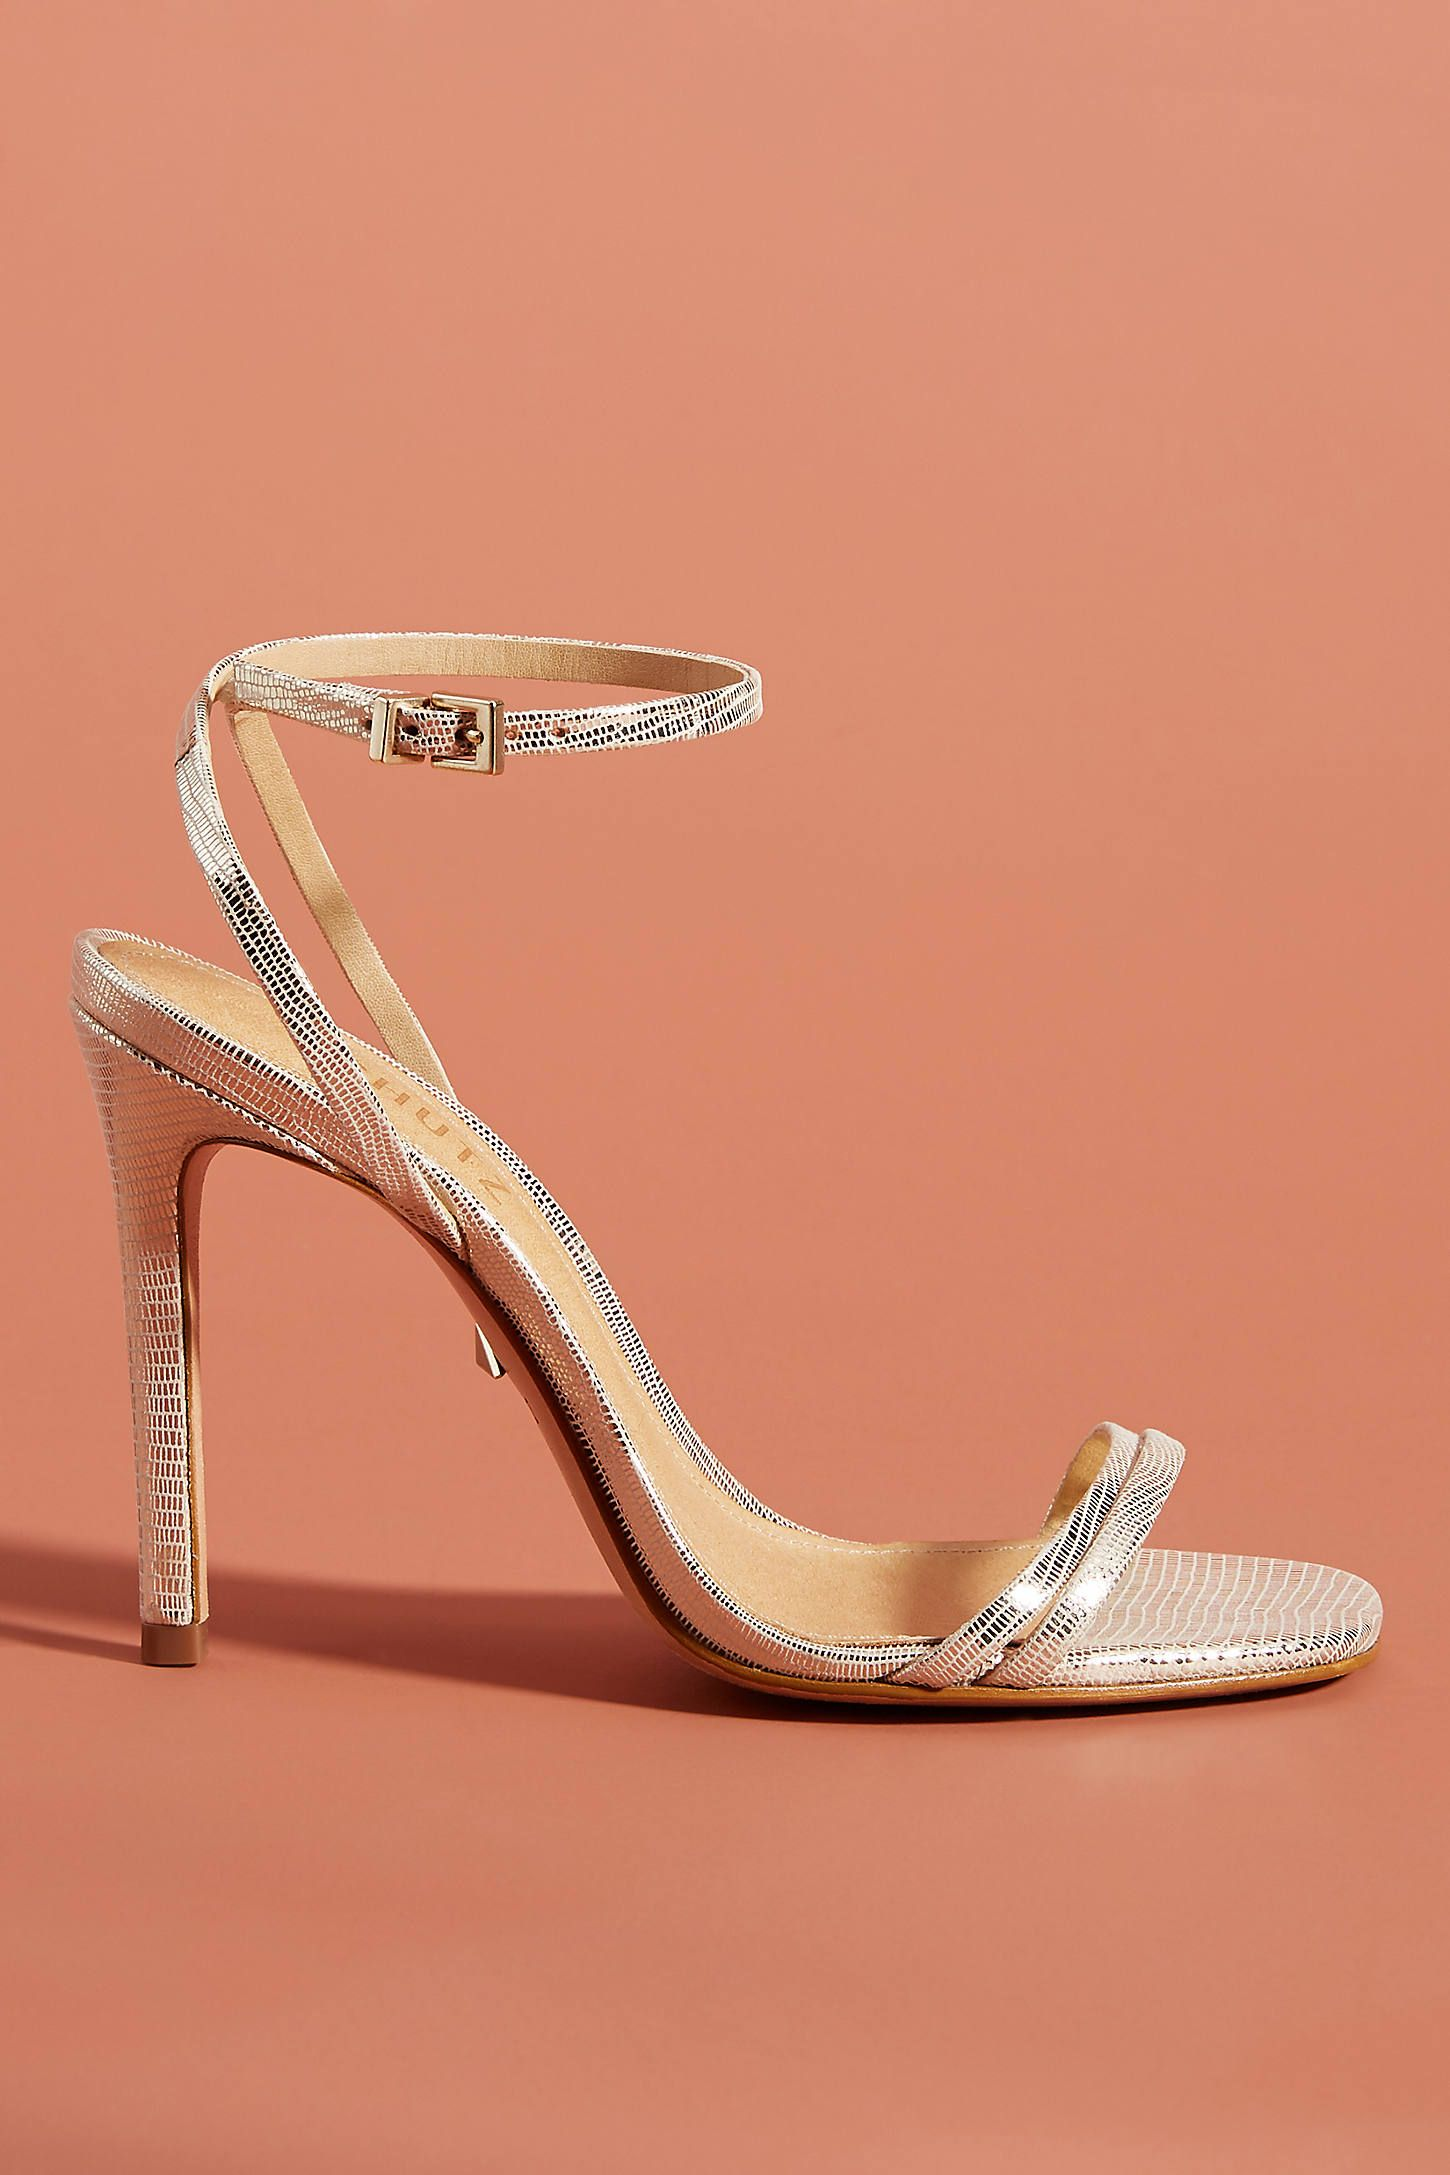 Schutz Altina Strappy Heels By In Gold Size 9 5 At Anthropologie In 2020 Strappy Heels Heels Mules Shoes